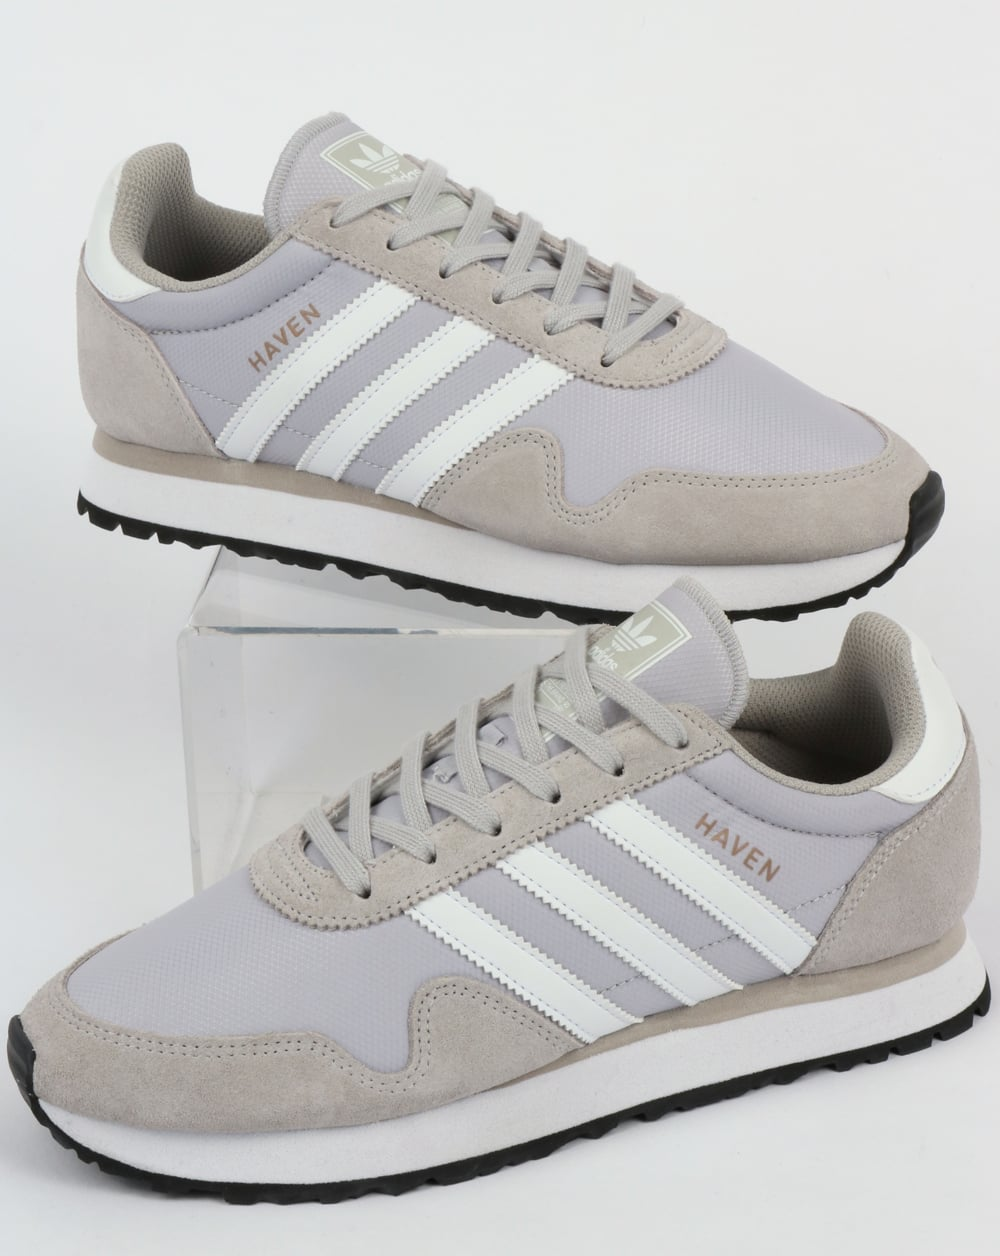 Adidas Haven Trainers Light Grey/White